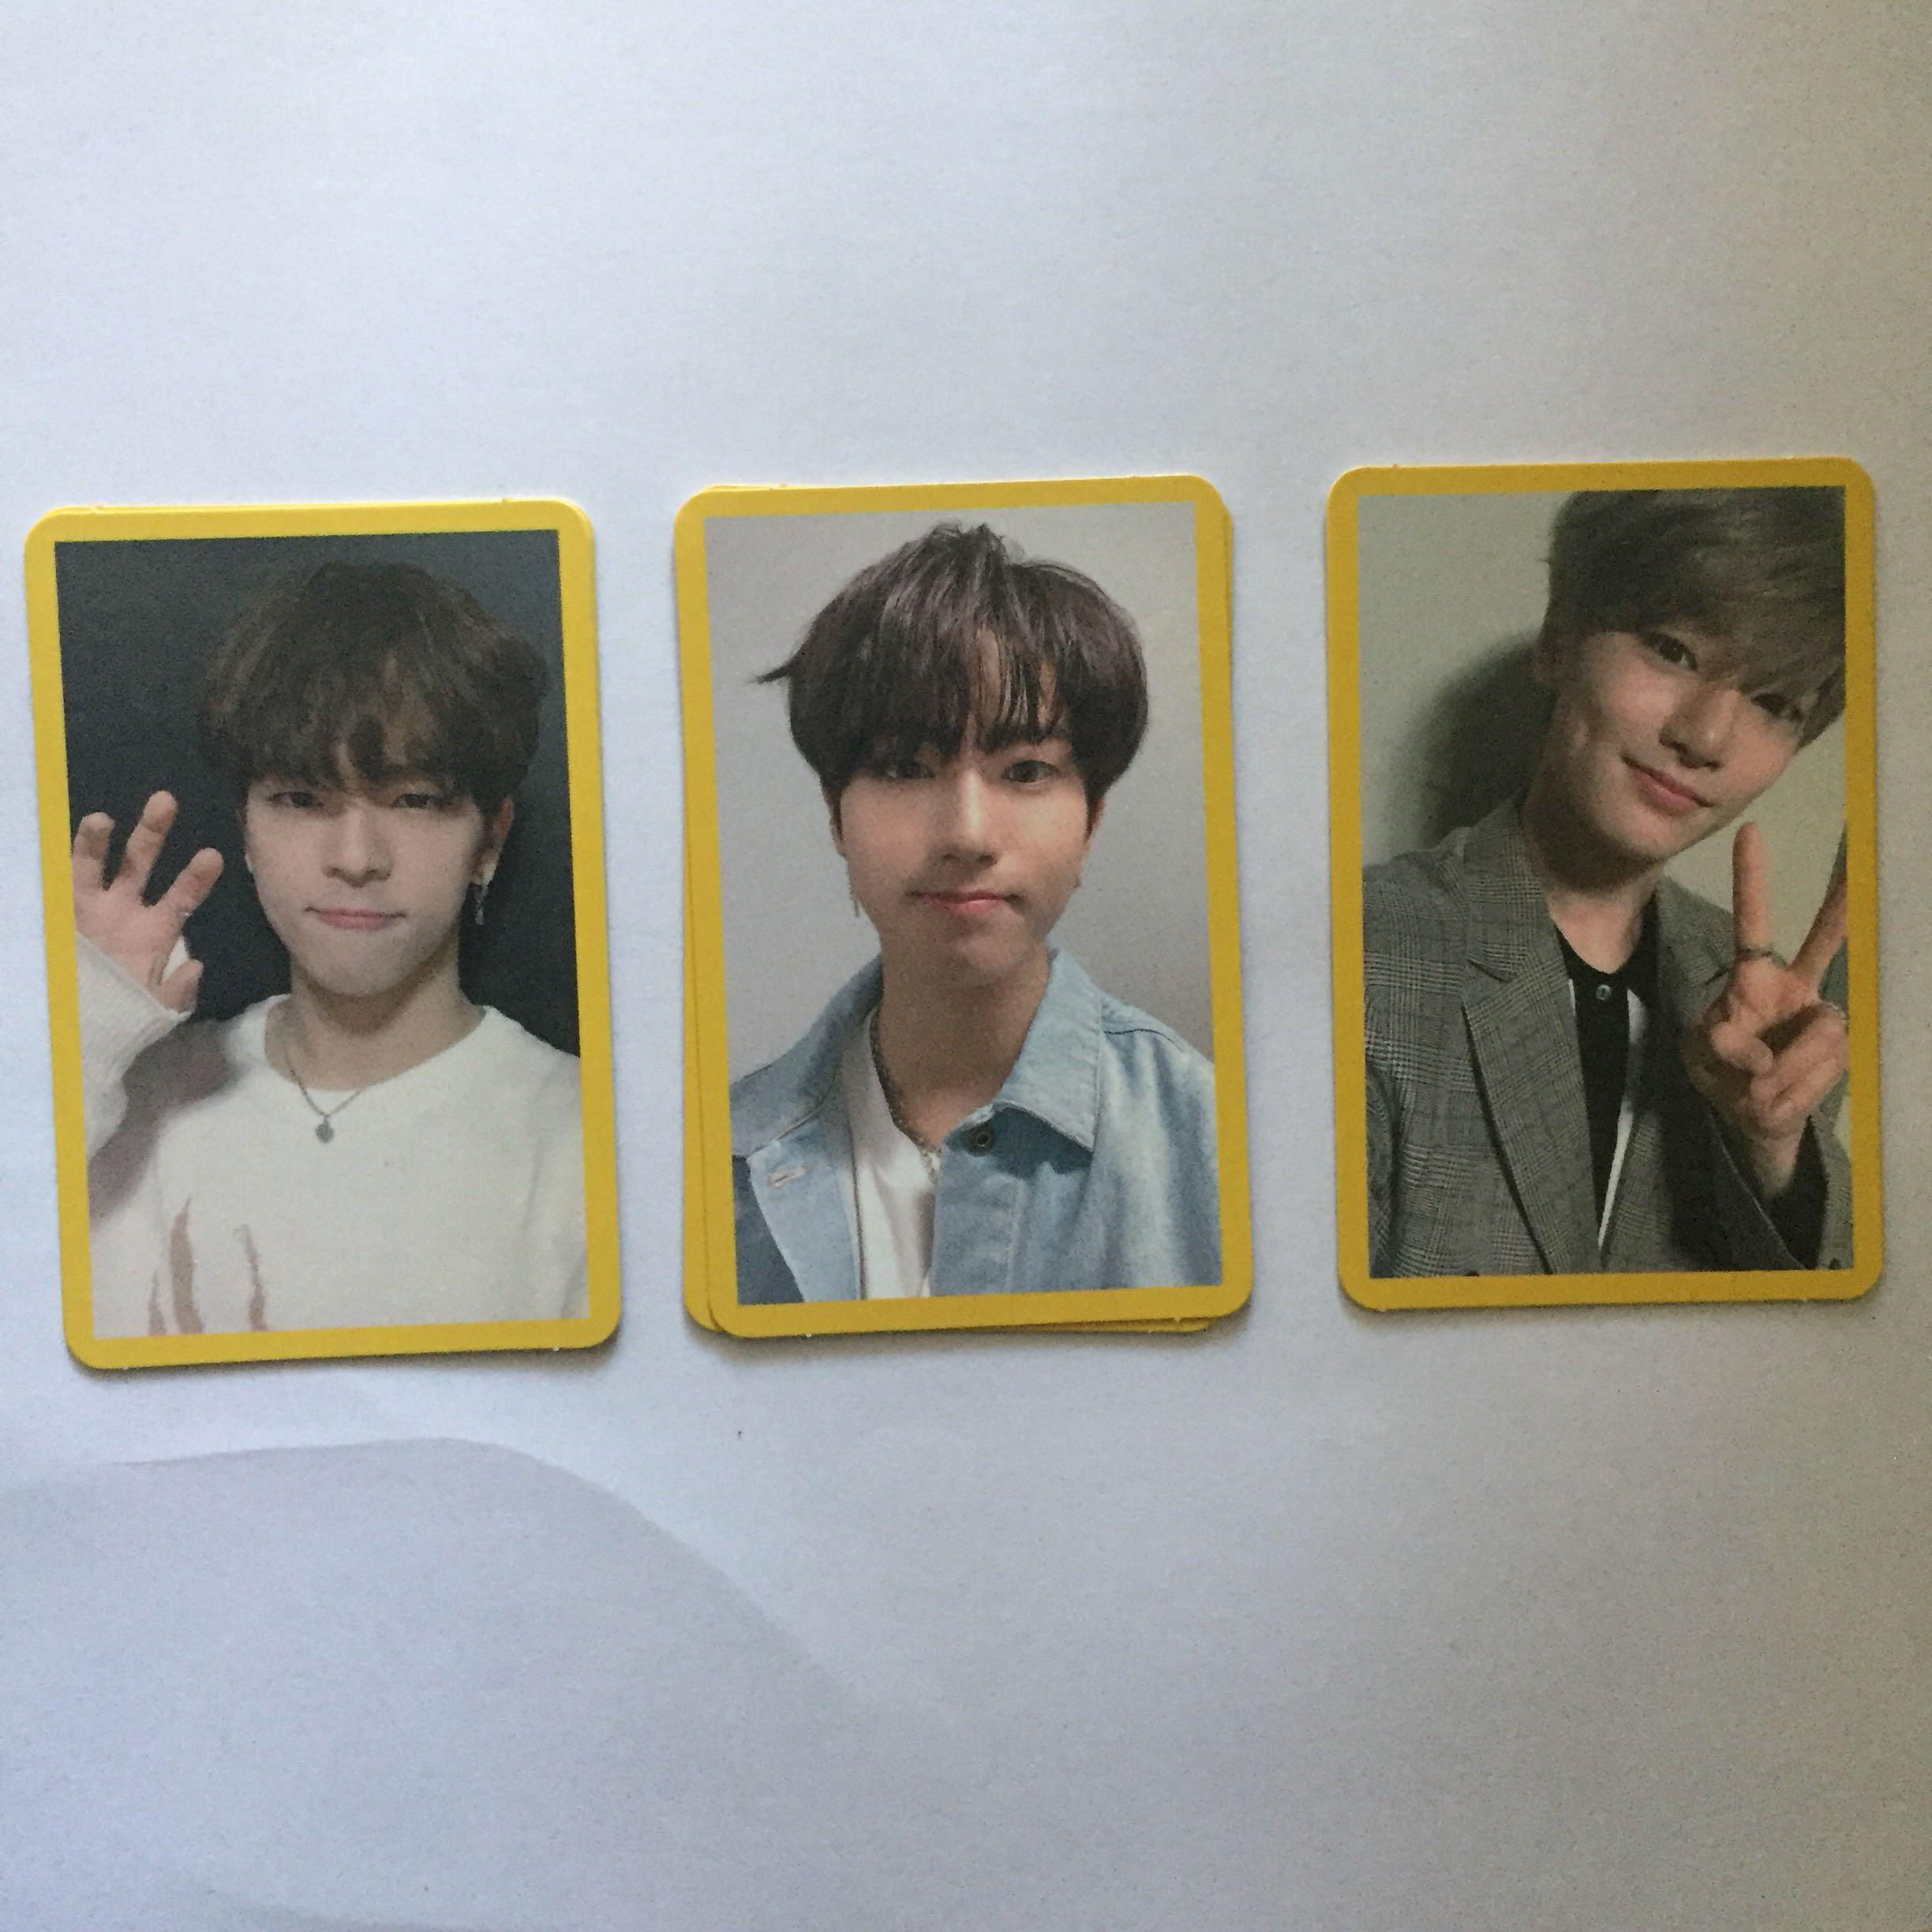 [WTS] Stray Kids - Clé 2: Yellow Wood Yellow Border Photocards